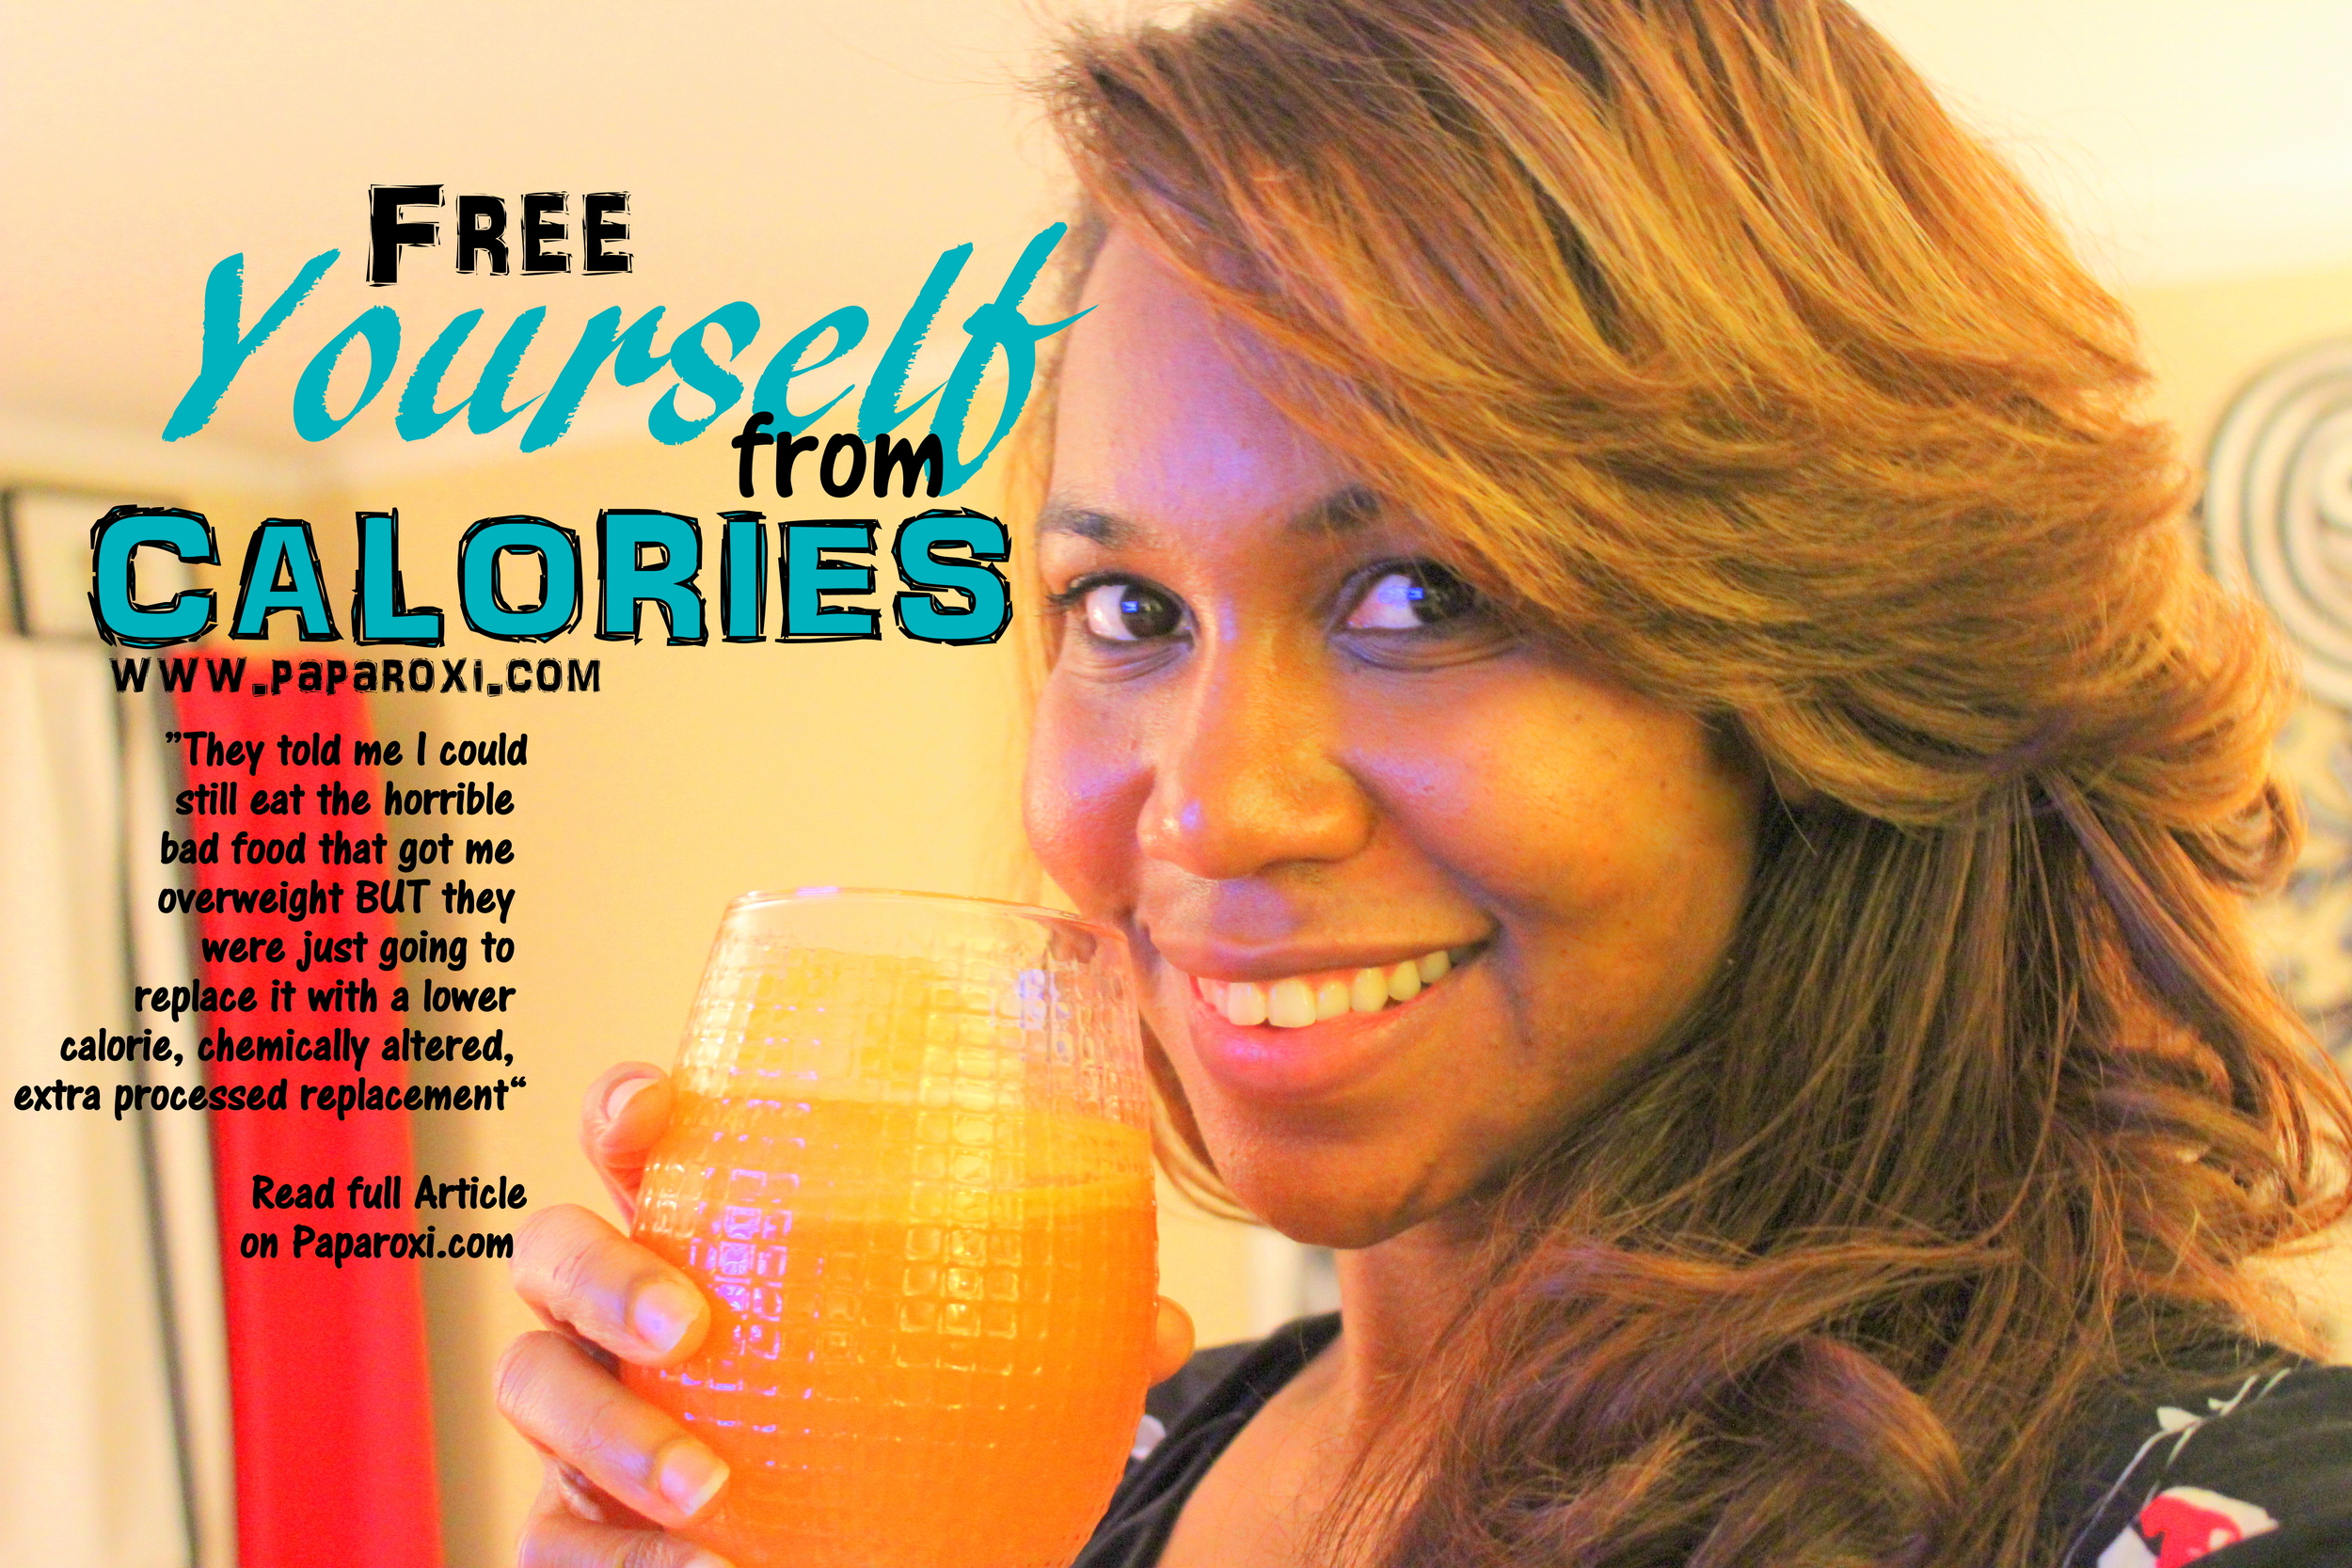 Free from calories_calorie counting_healthy living_change_life_paparoxi_roxi.JPG